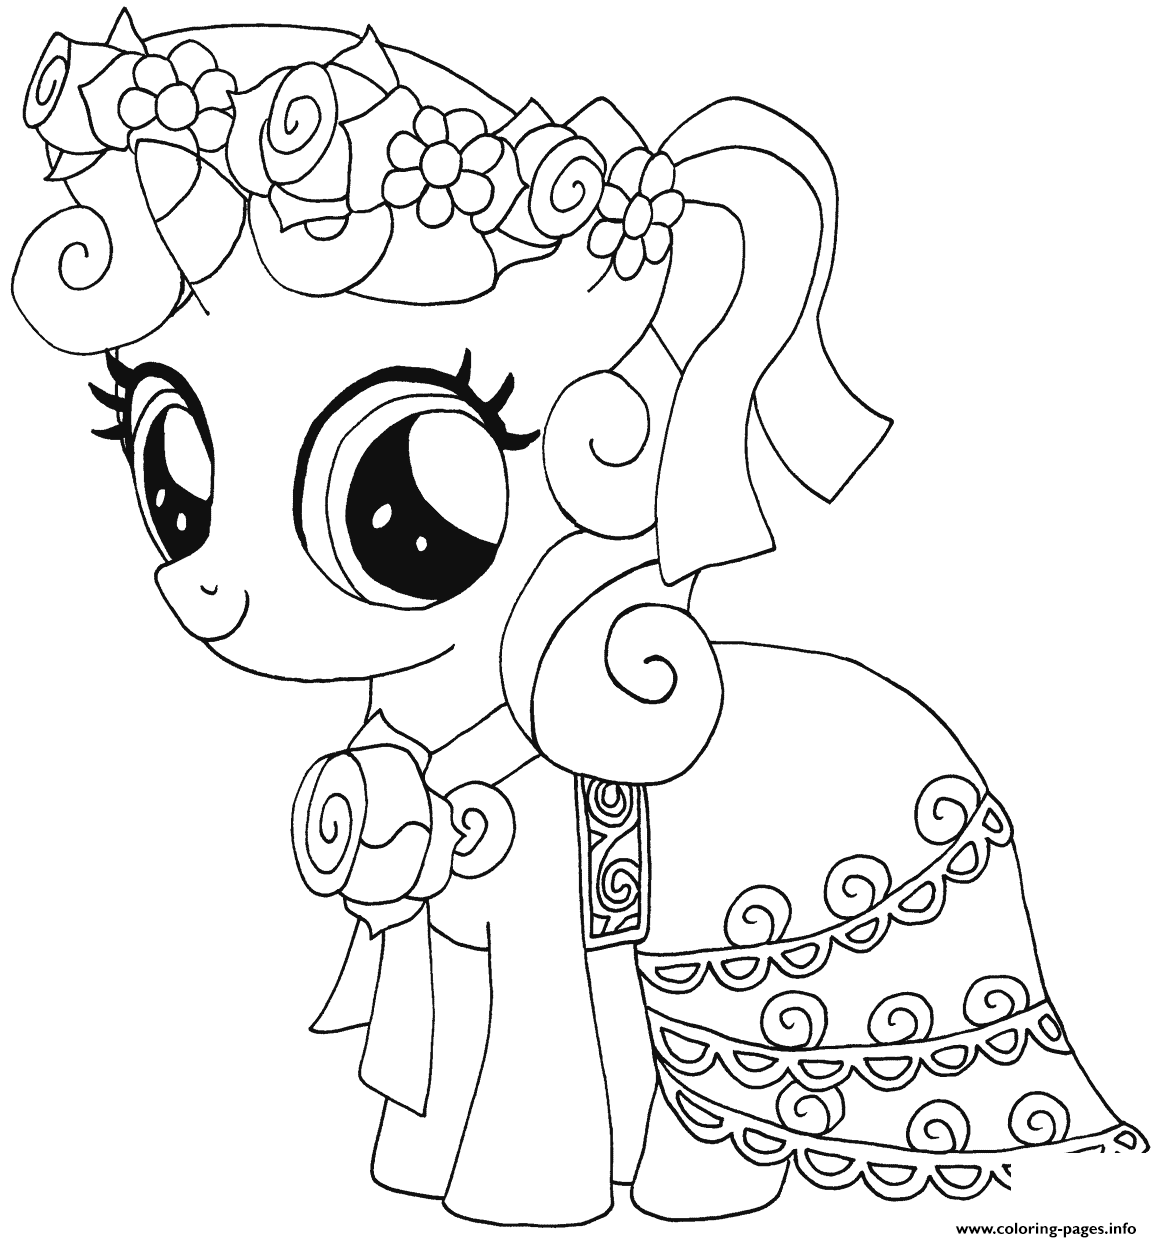 my little pony sweetie belle sweetie belle my little pony coloring pages printable little my pony belle sweetie